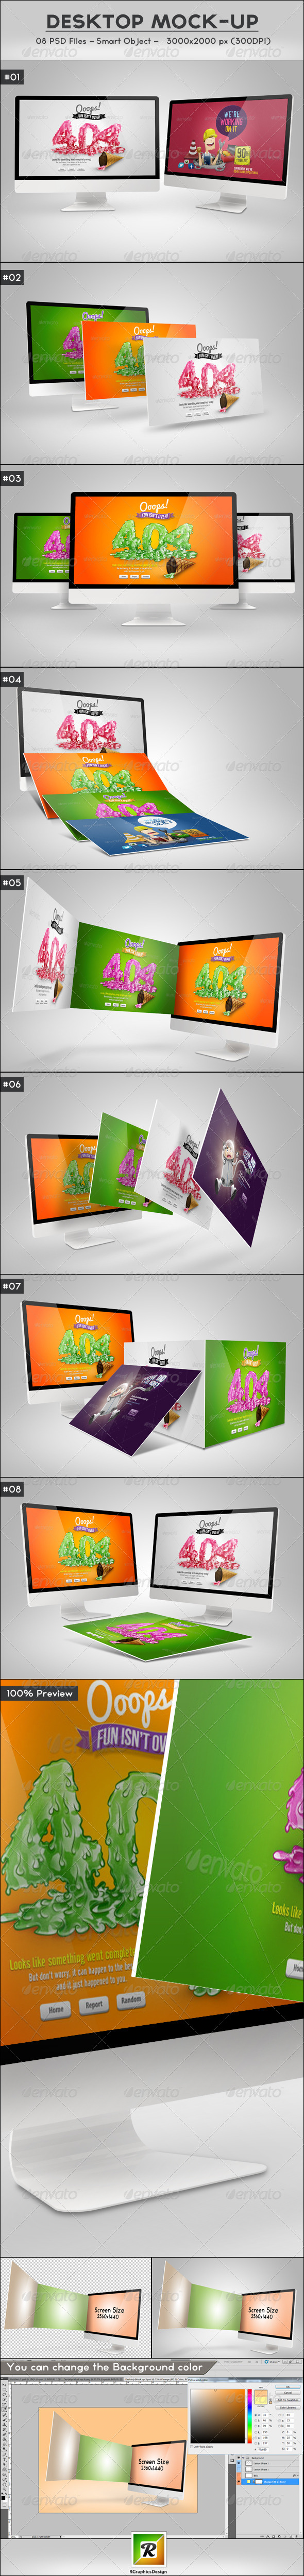 Desktop Mock-Up - Displays Product Mock-Ups